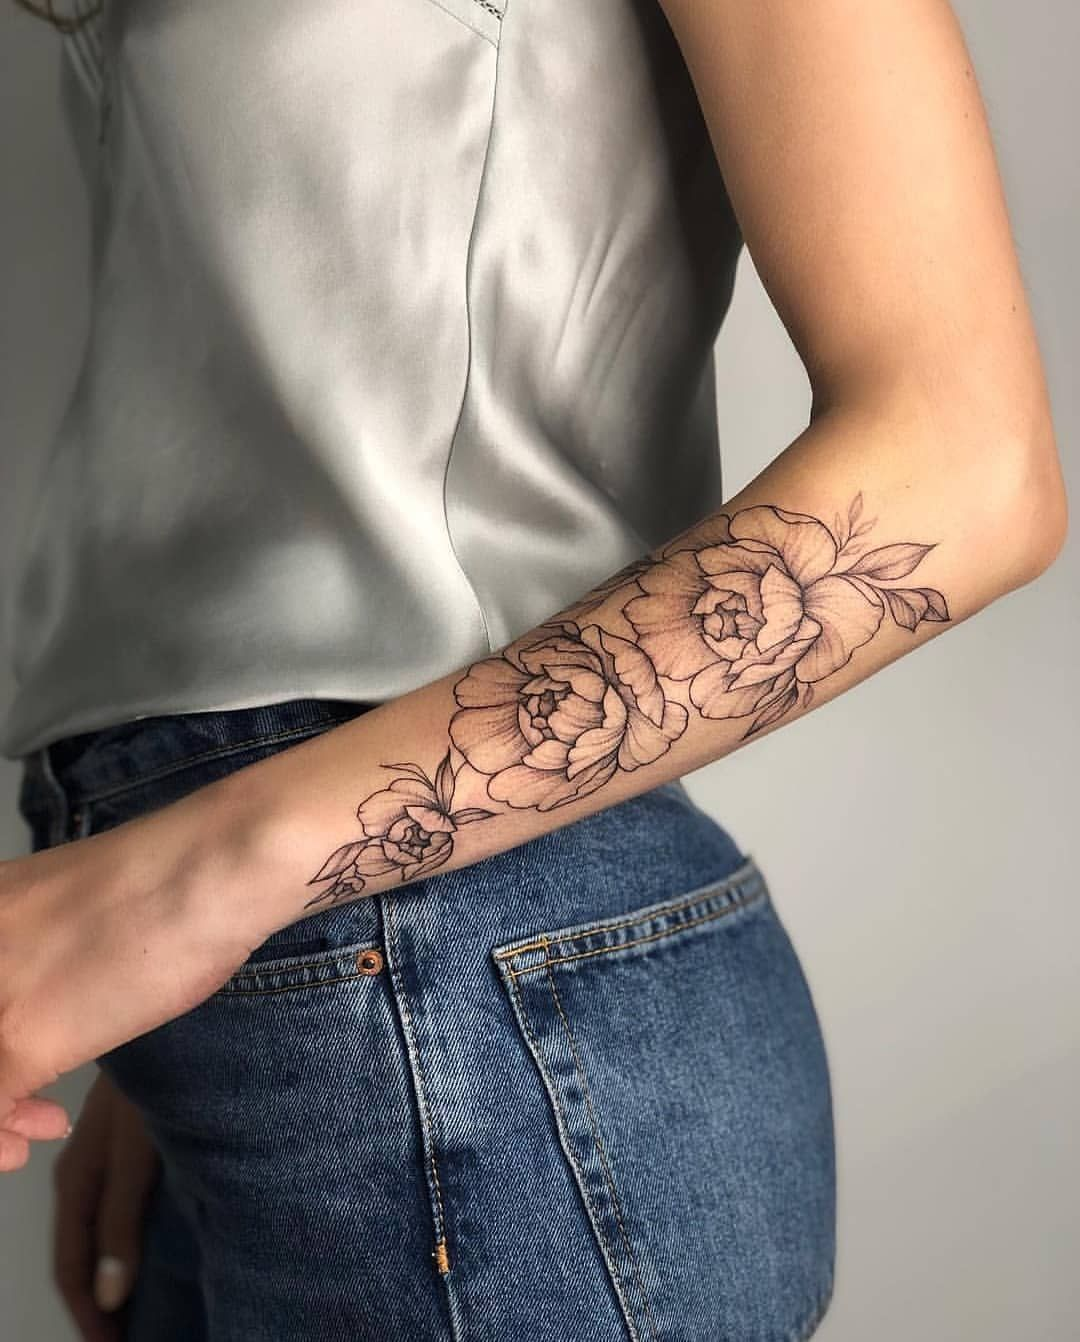 Pin On Tattoos Ideas For Girls